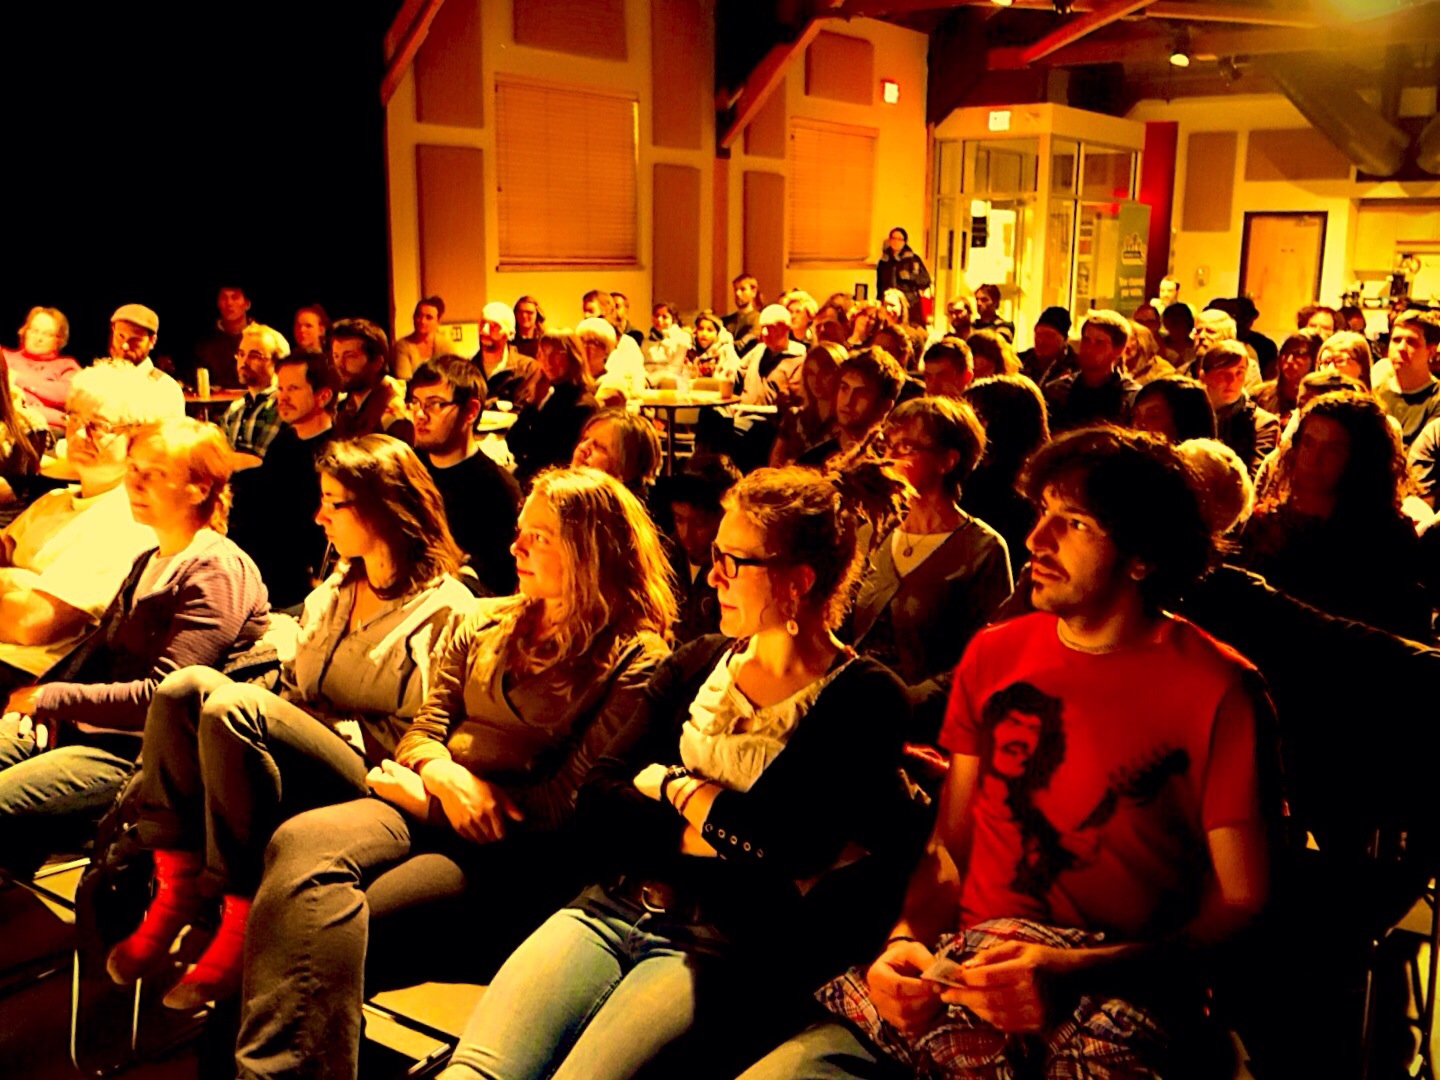 YFS's Yukon 48 short movies entertain everyone